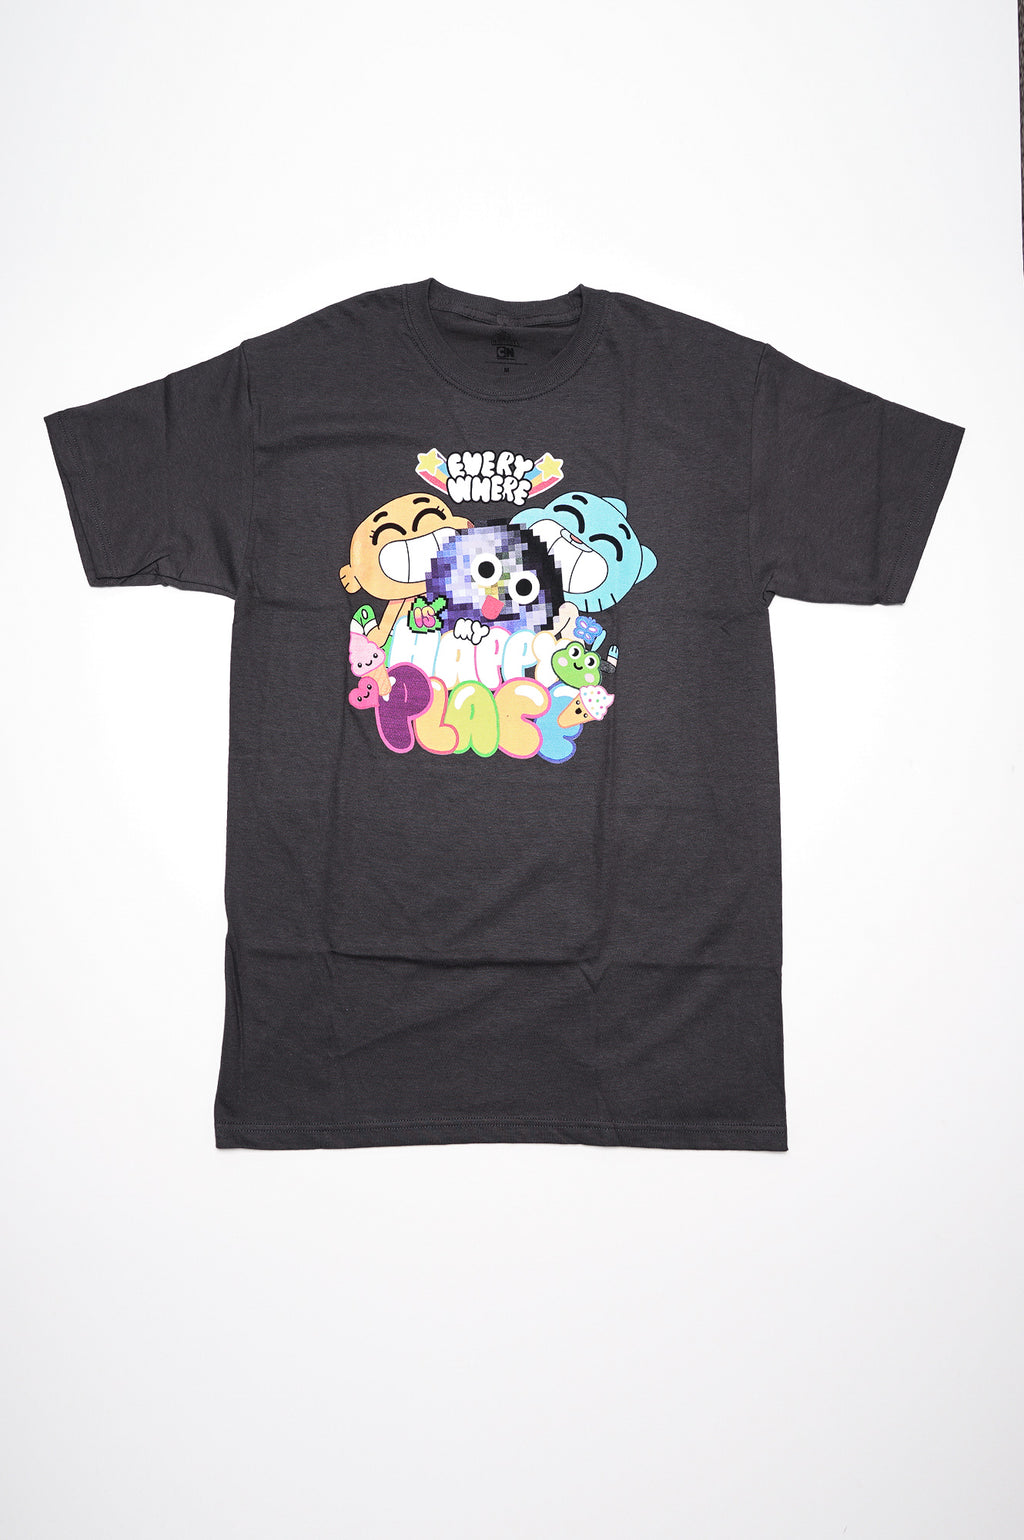 Aao Fashion Men Graphic Tee Cartoon Network